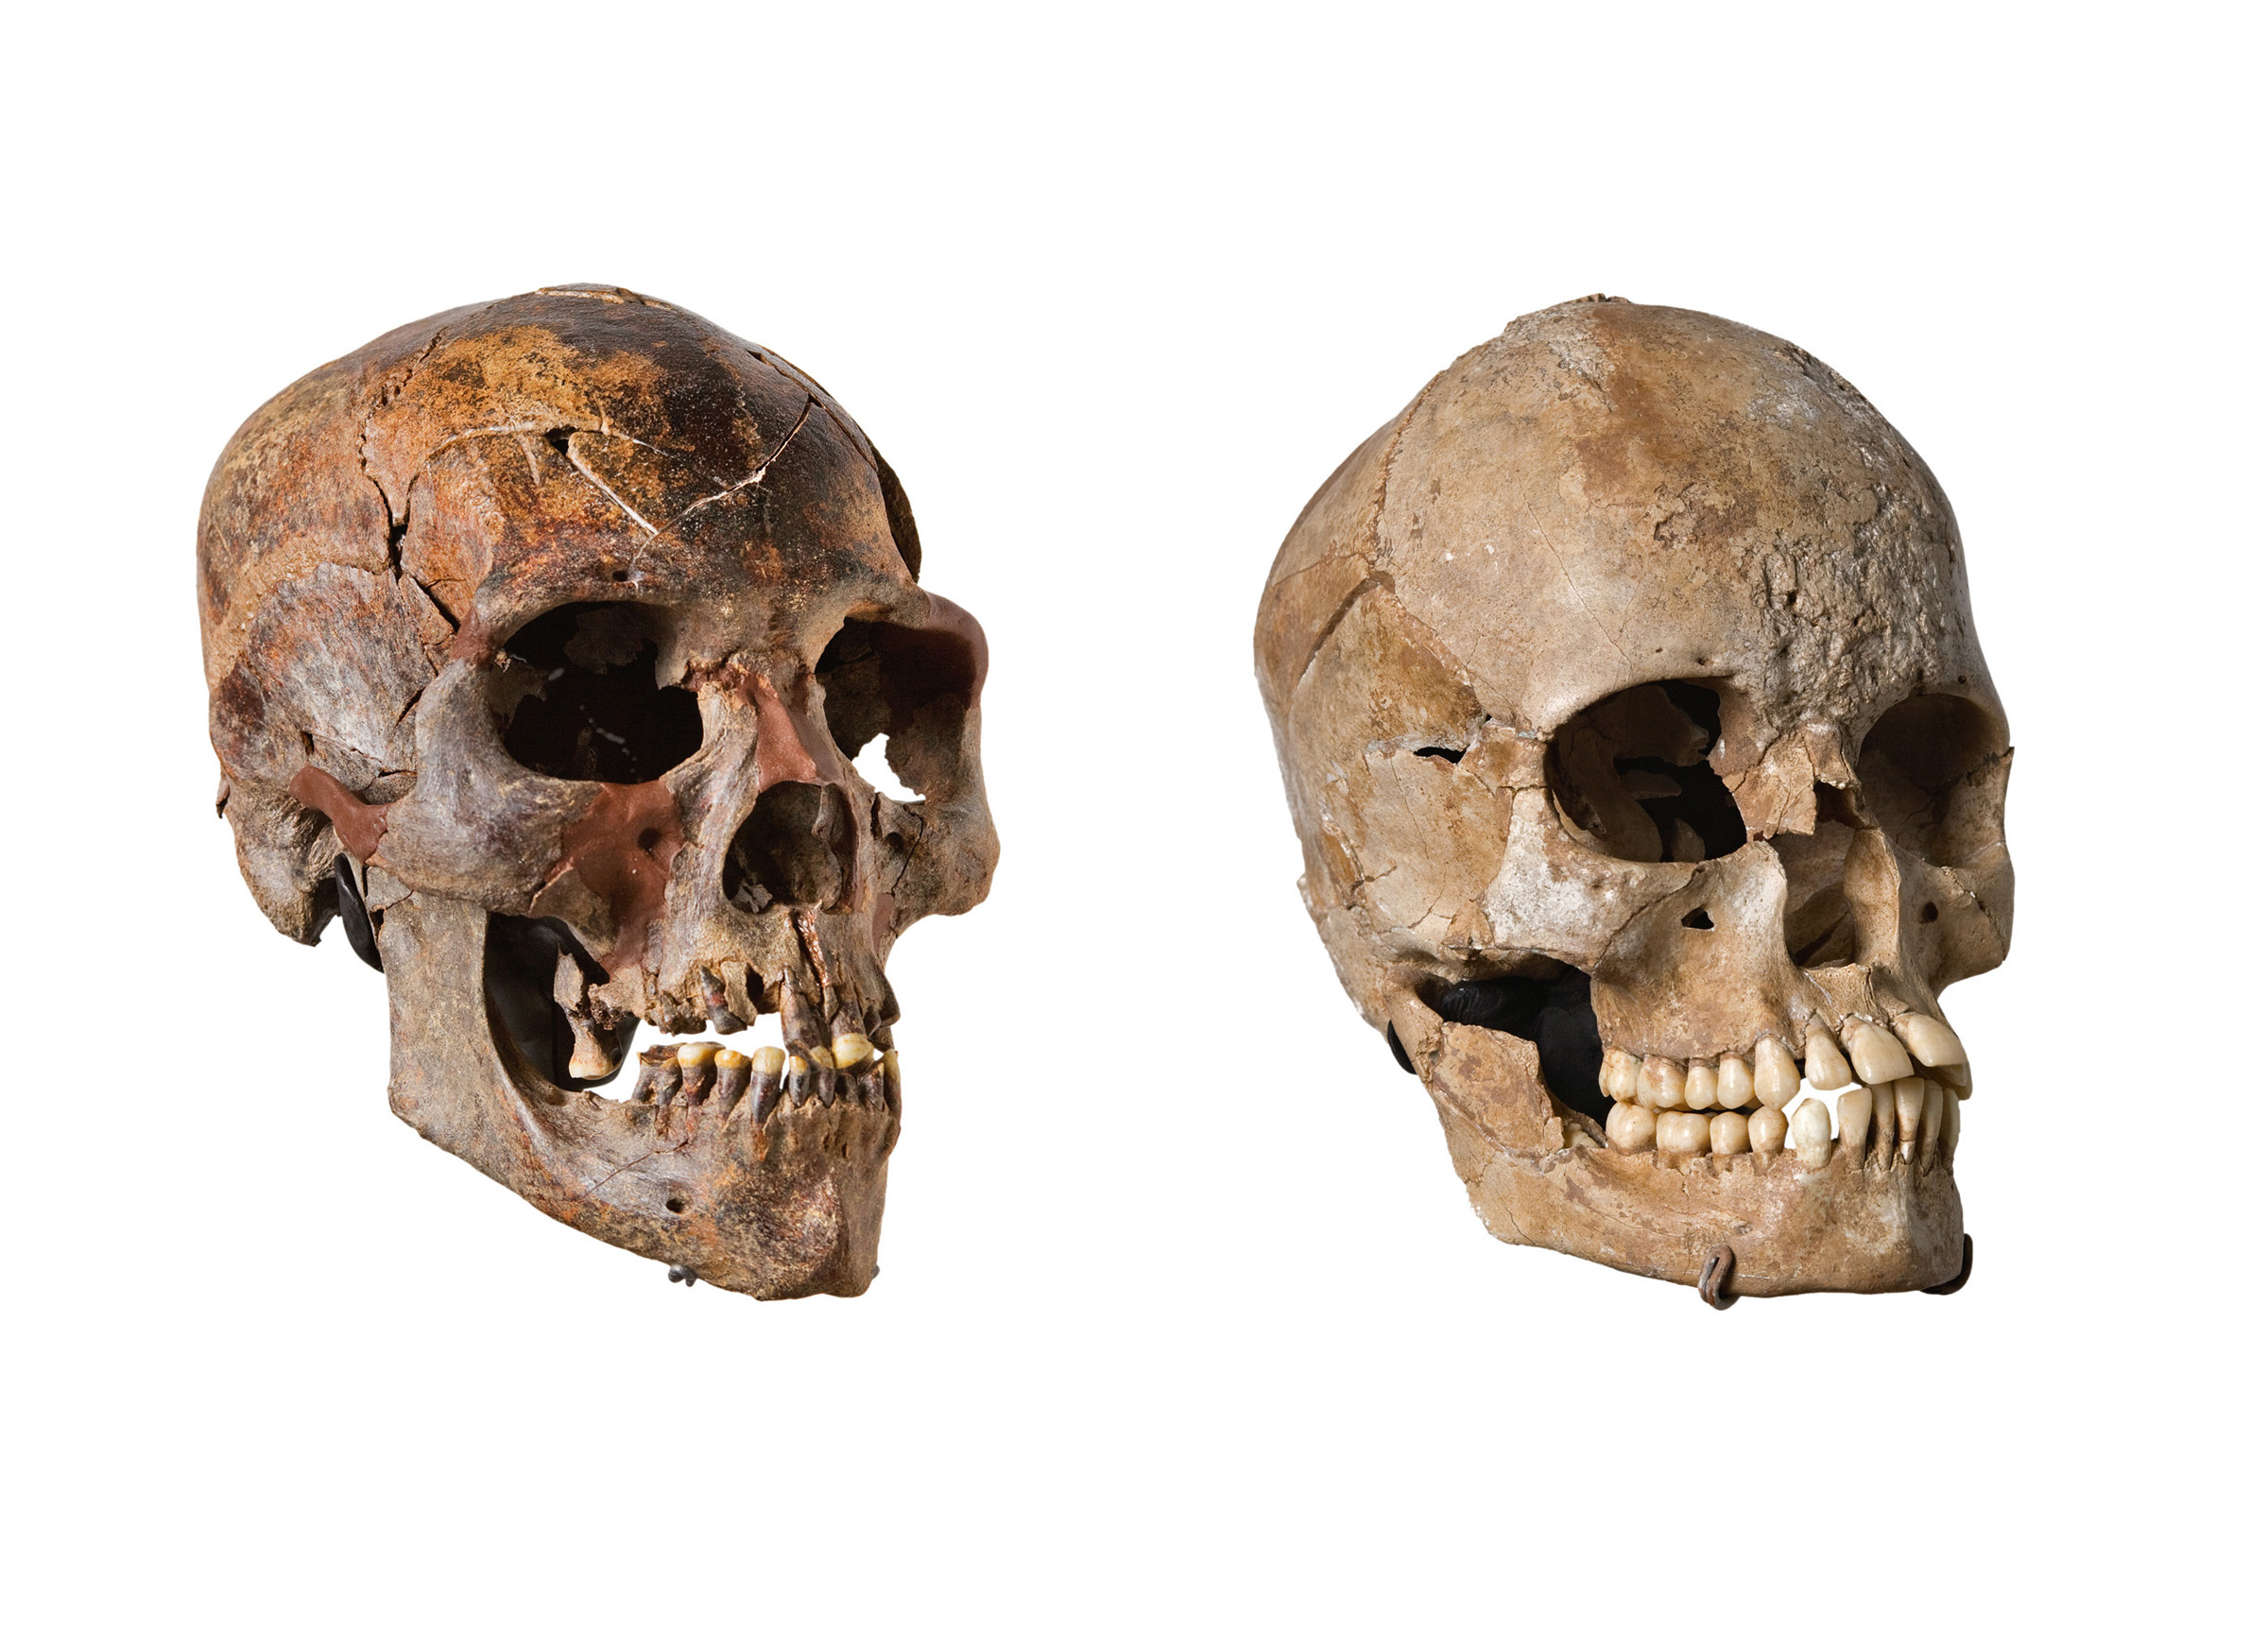 Kiffian (9,500 year old) Skull vs Tenereian (5,800 year ...